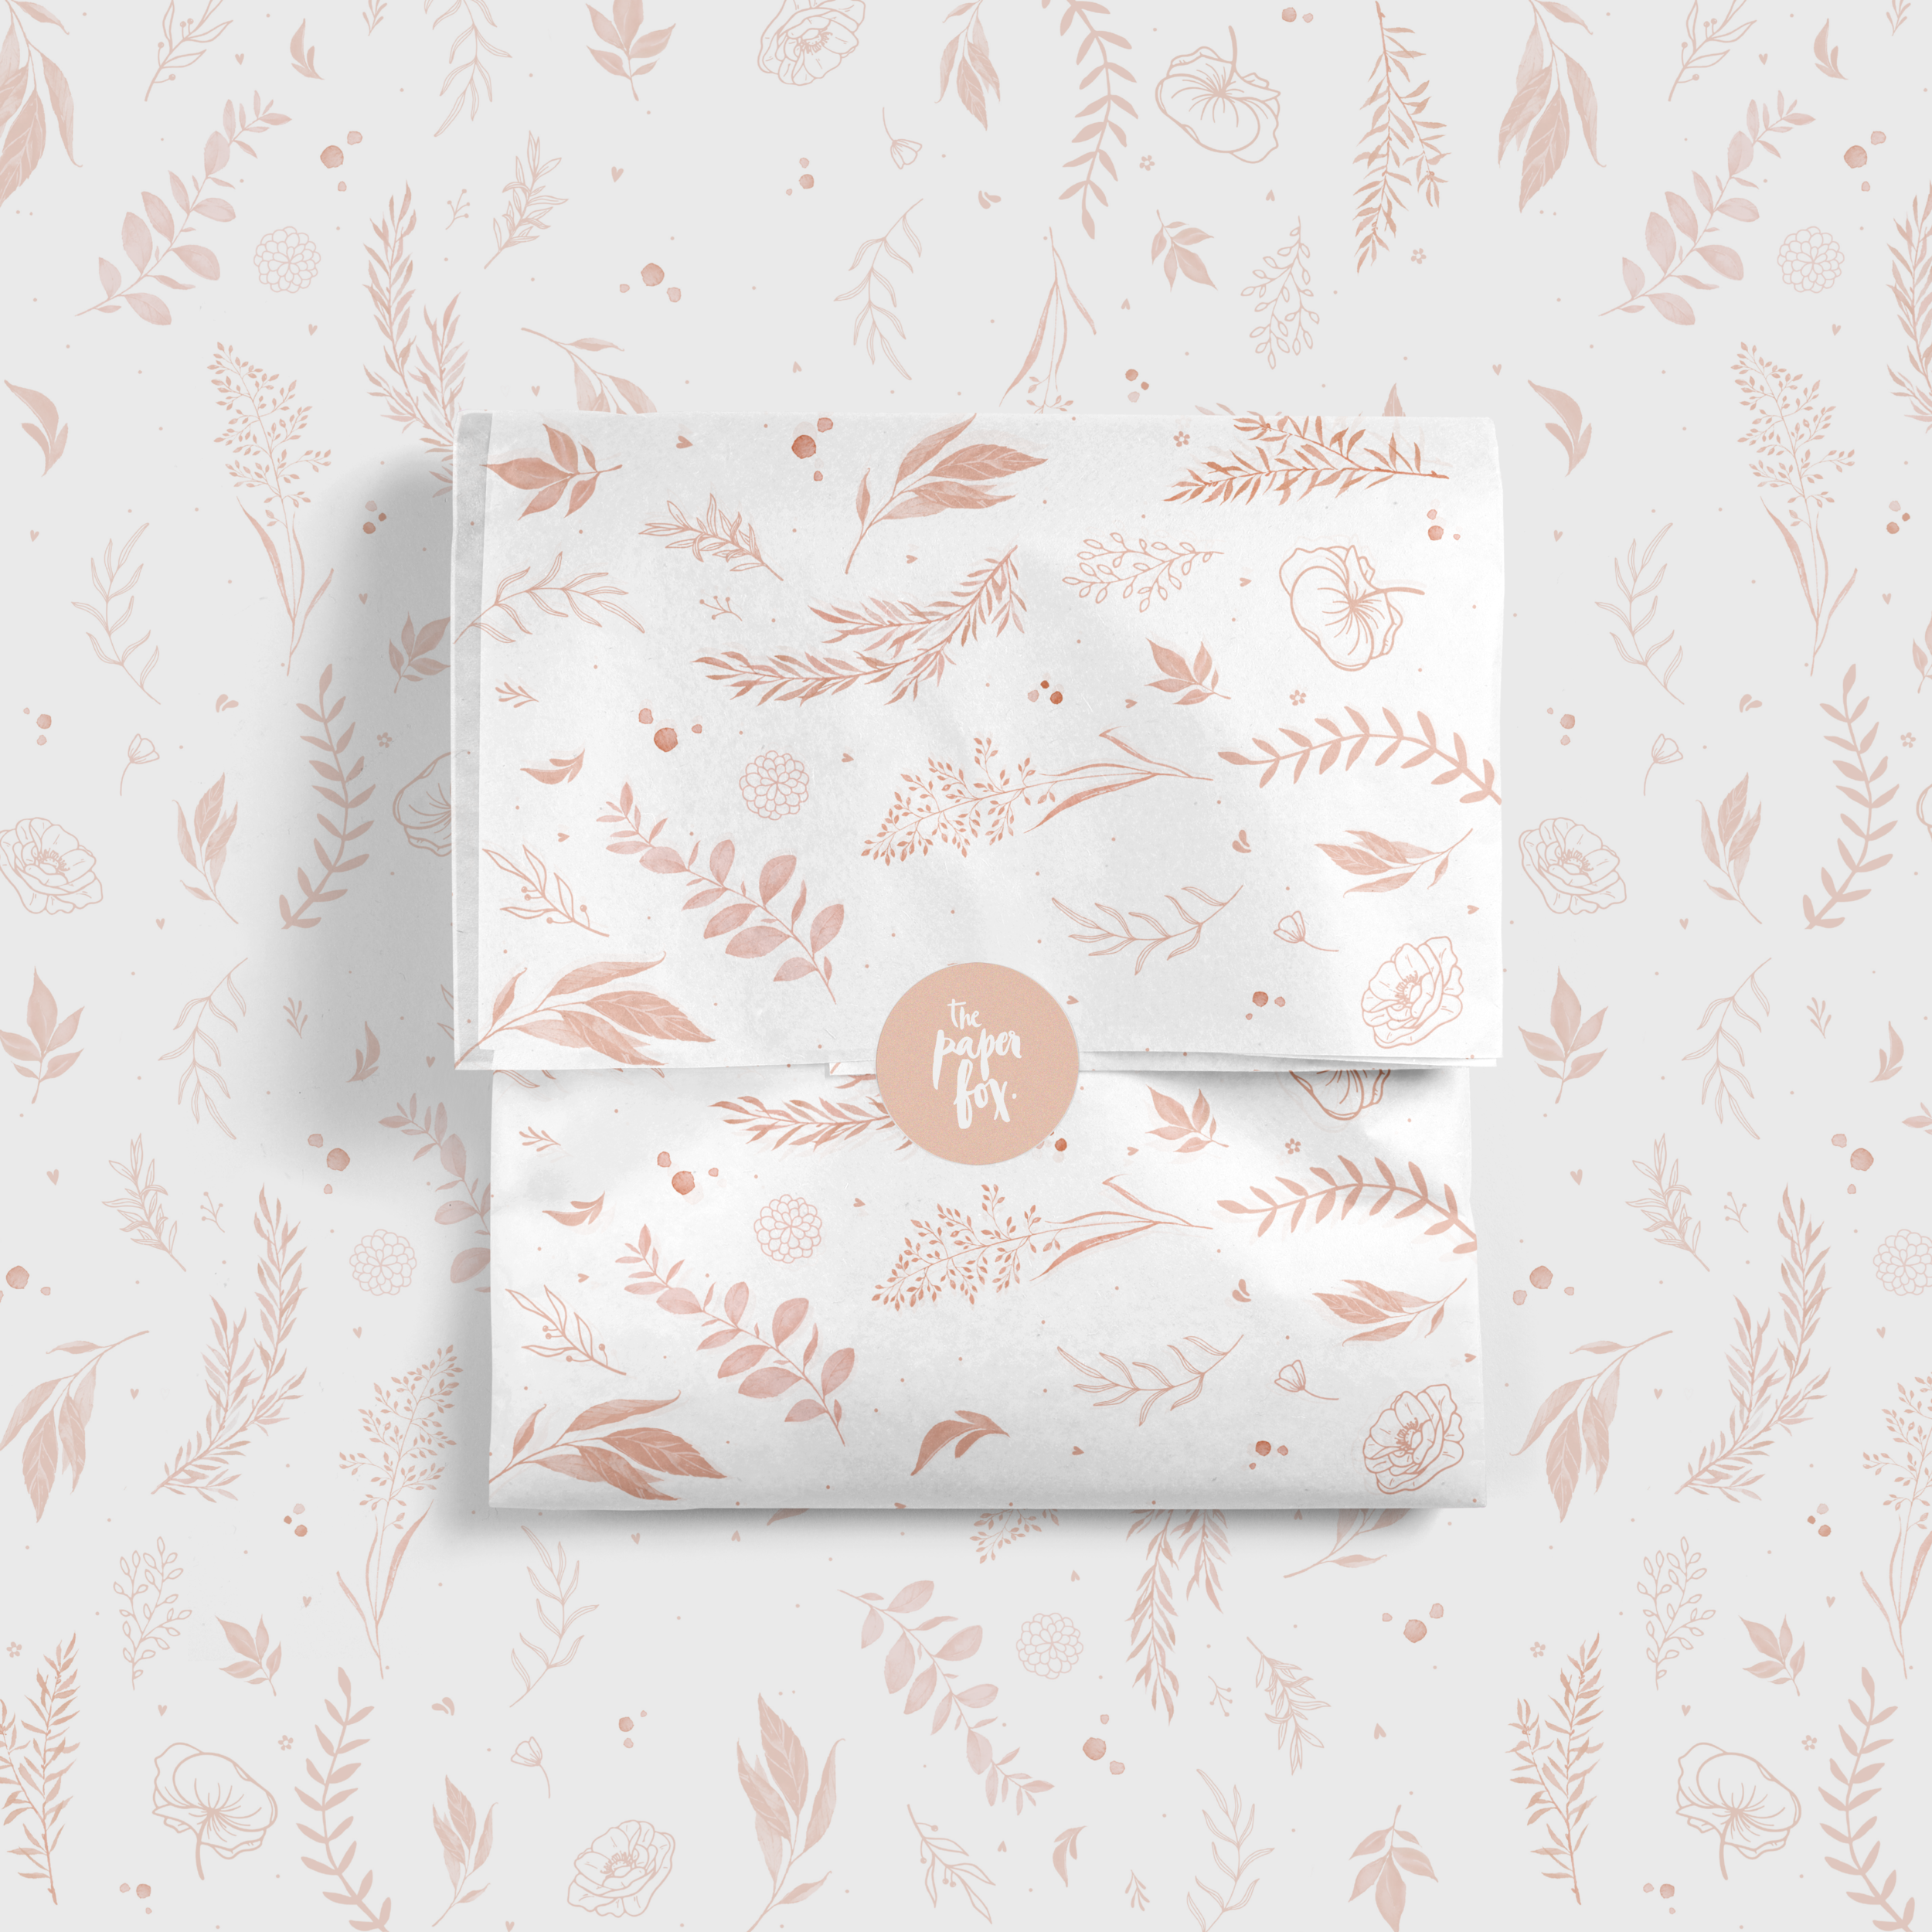 GIft wrapped in white tissue paper with peach coloured floral design print